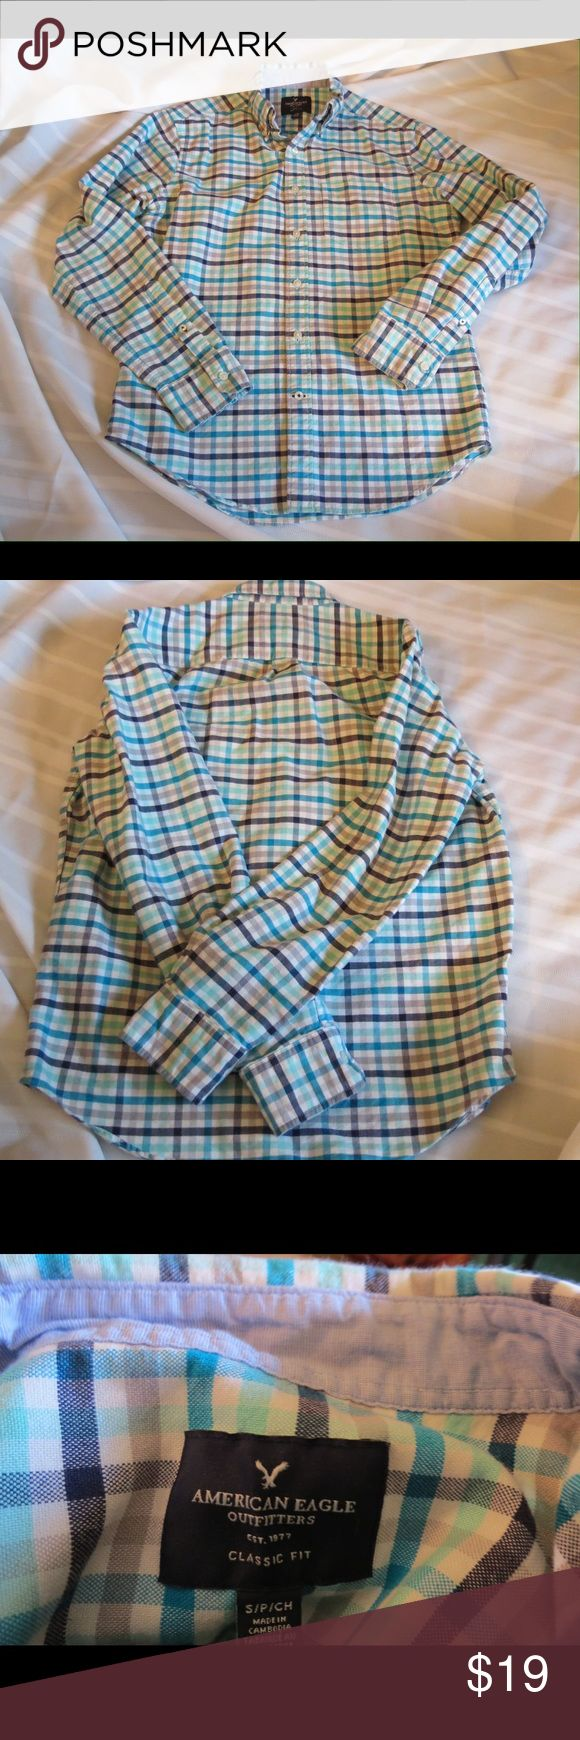 AE Outfitters 100% Cotton Button Down Plaid American Eagle Outfitters 100% Cotton Button Down Plaid Size S  Size S   Gently used excellent condition! All of my items are Guaranteed 100% Genuine I do not sell FAKES of any kind No Trades (C1018) American Eagle Outfitters Shirts Casual Button Down Shirts